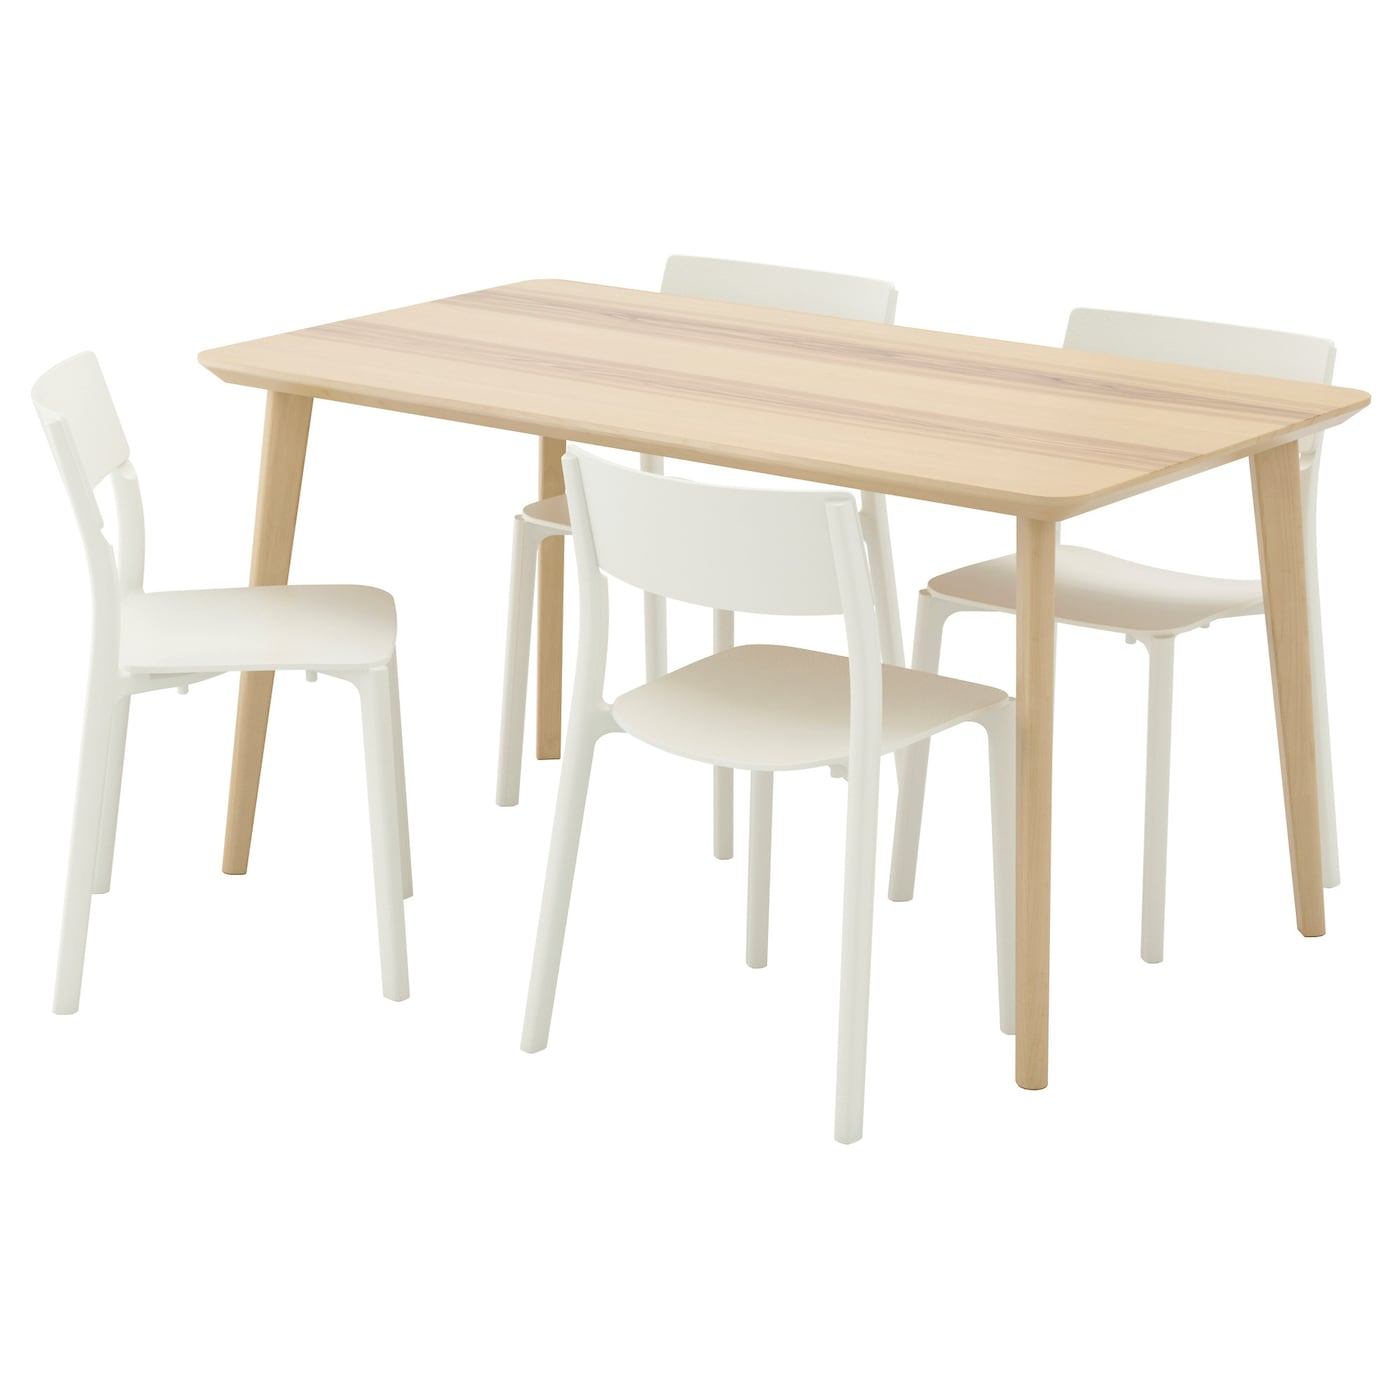 IKEA JANINGE/LISABO table and 4 chairs